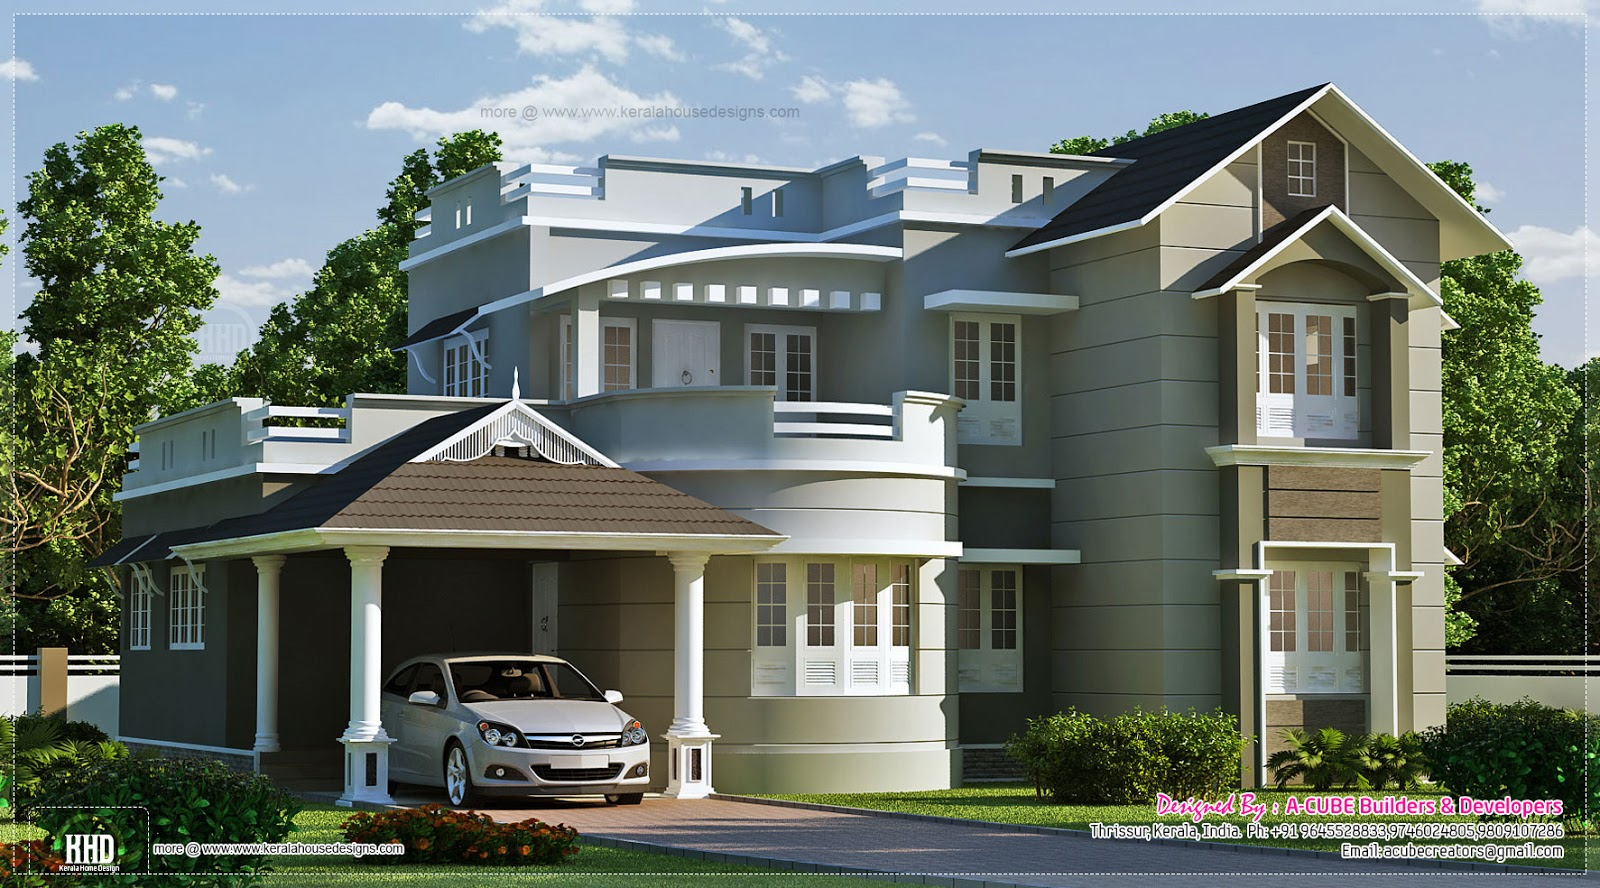 April 2013 kerala home design and floor plans for House design styles